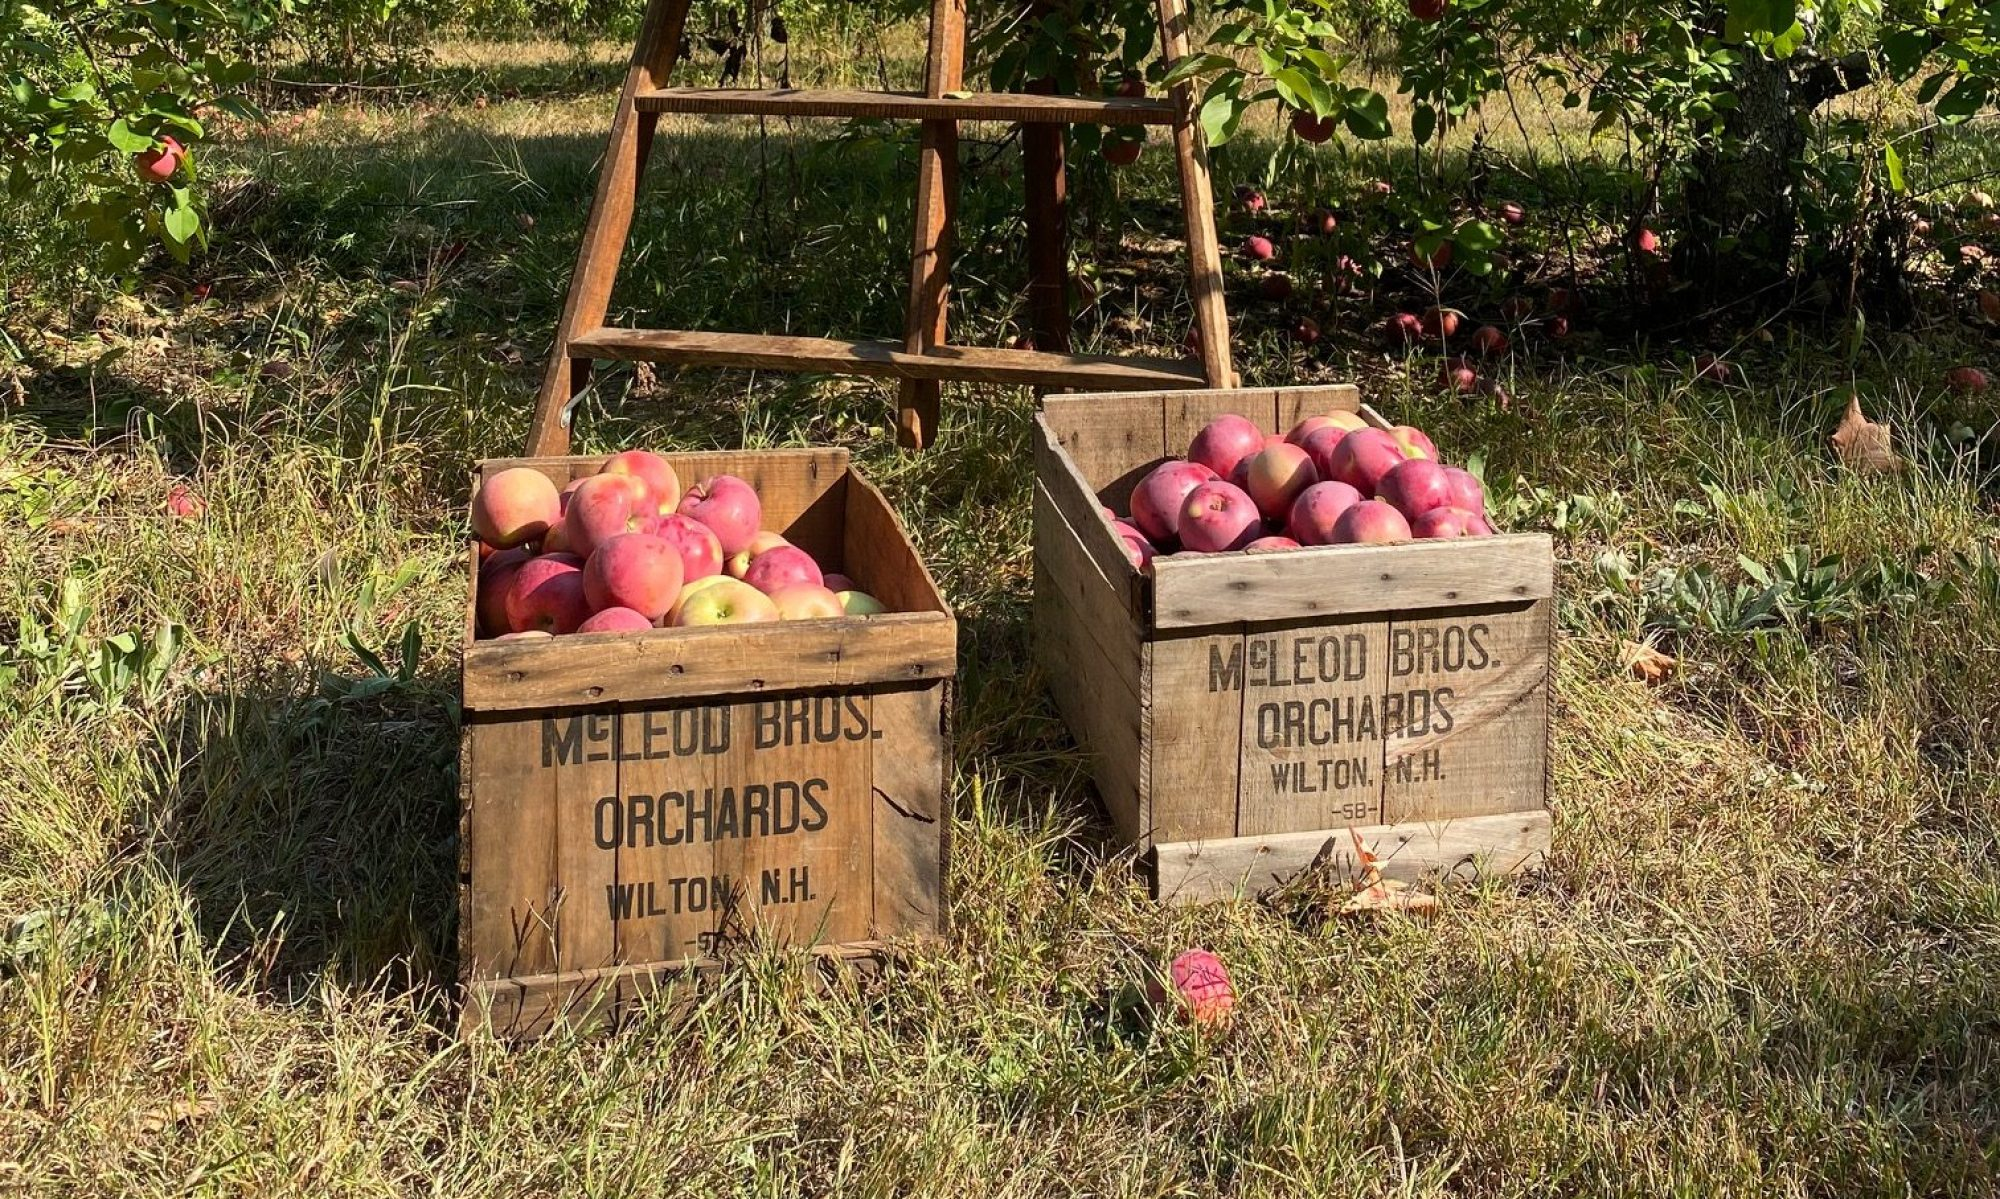 McLeod Orchards